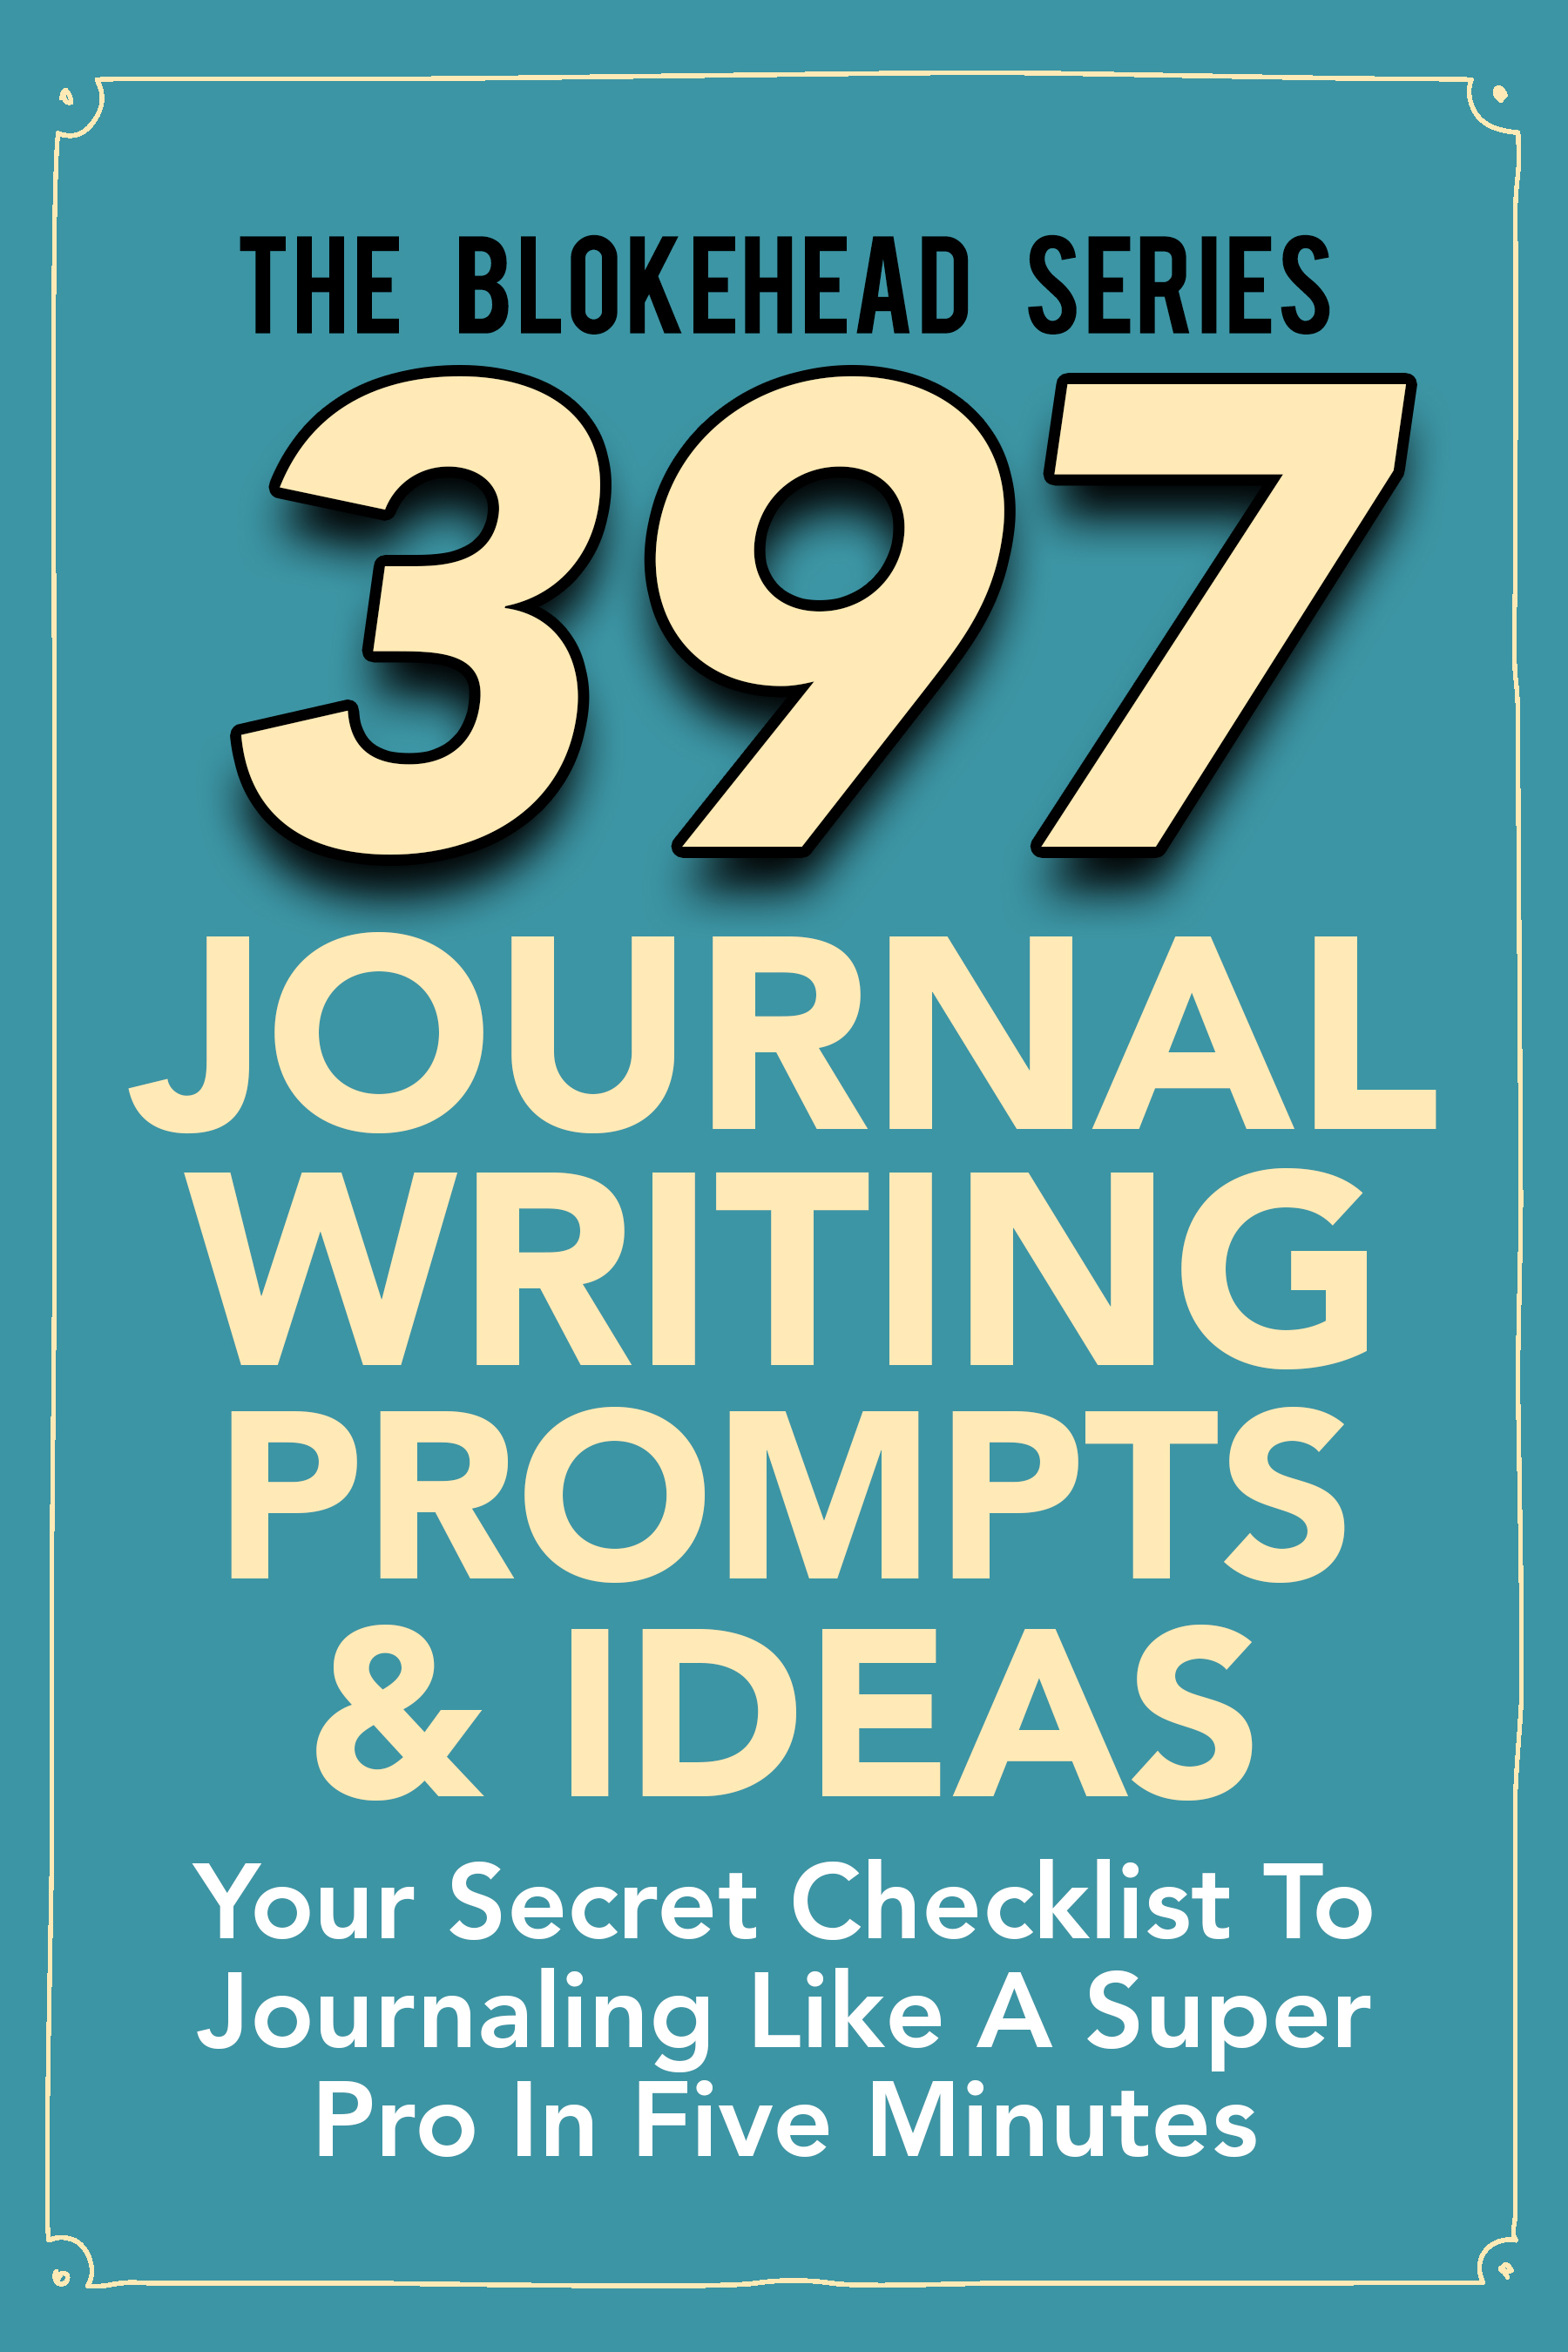 397 journal writing prompts & ideas : your secret checklist to journaling in five minute